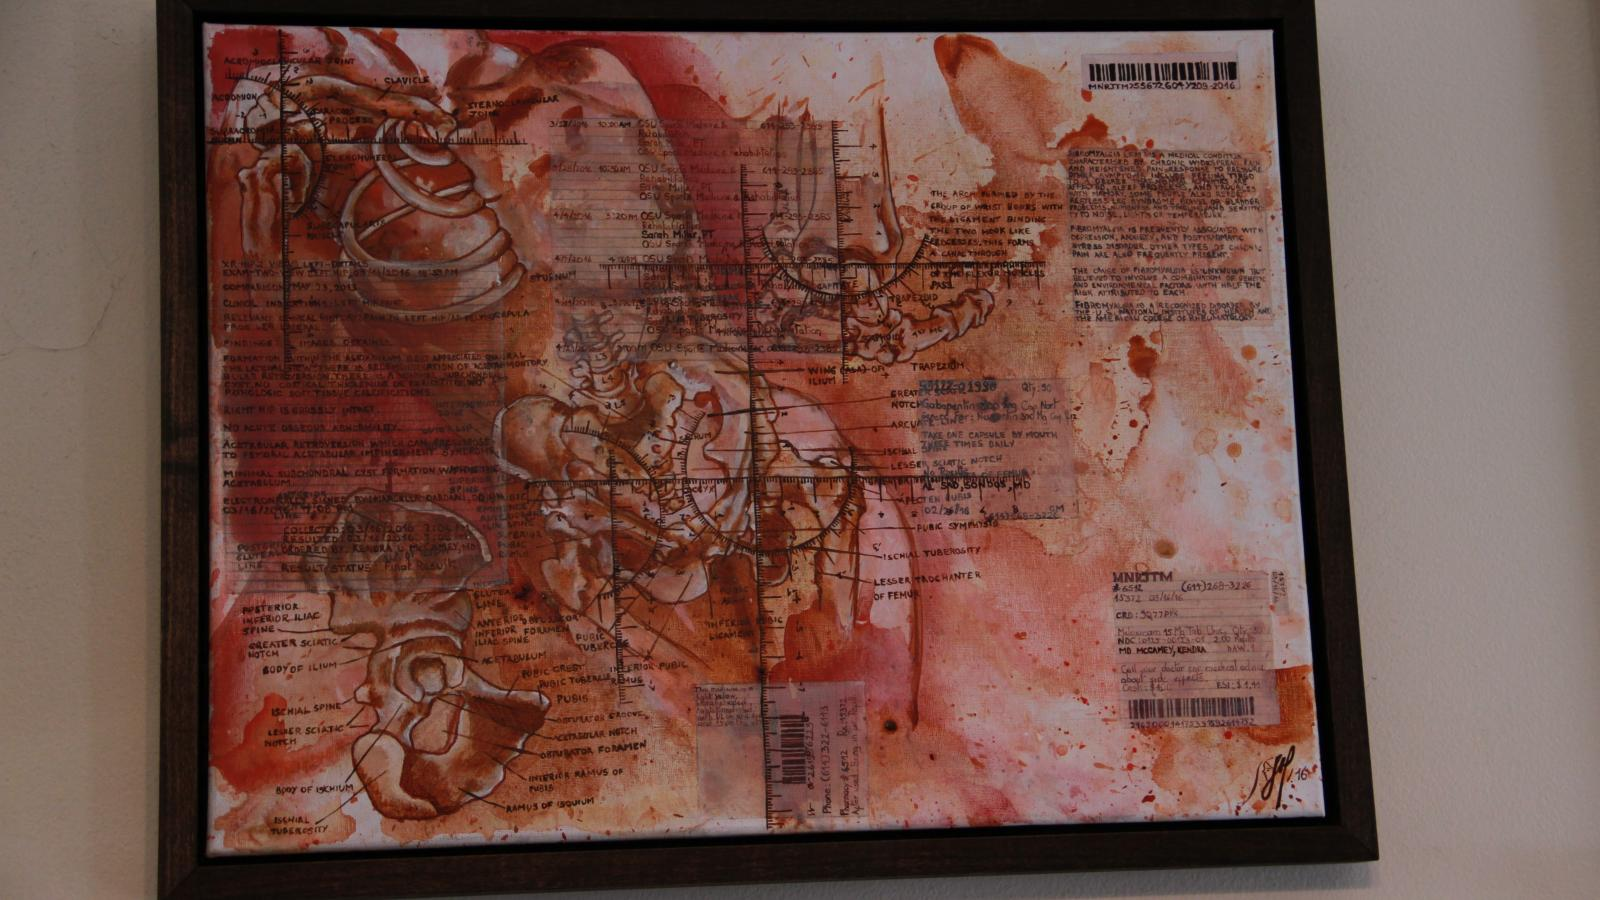 Manrique's mixed media medical paintings